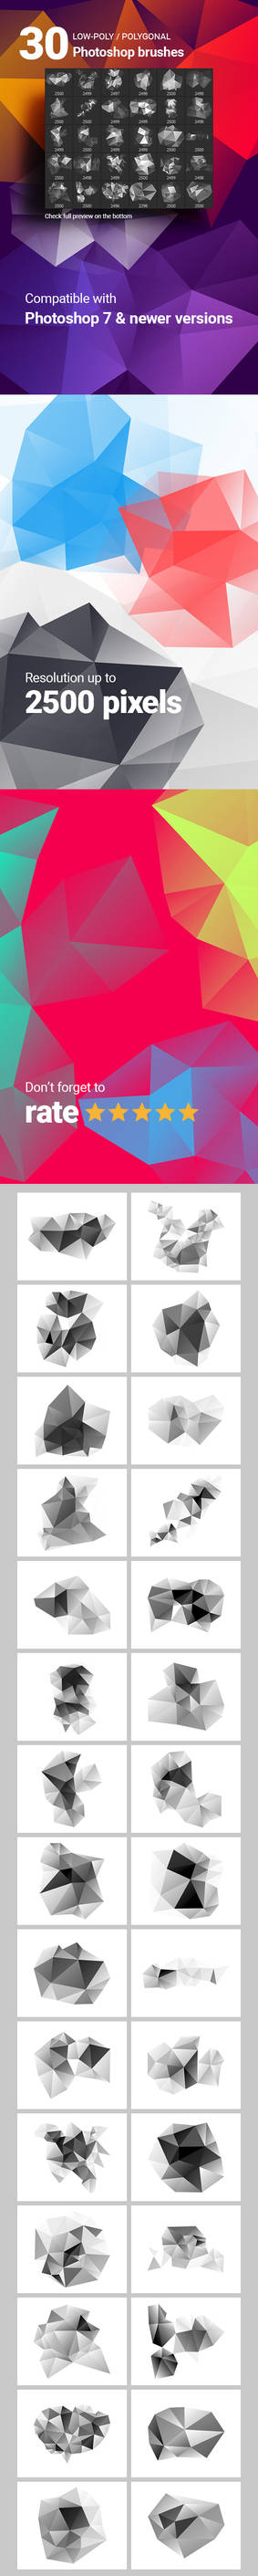 Low-Poly Polygonal Geometrical Photoshop Brushes